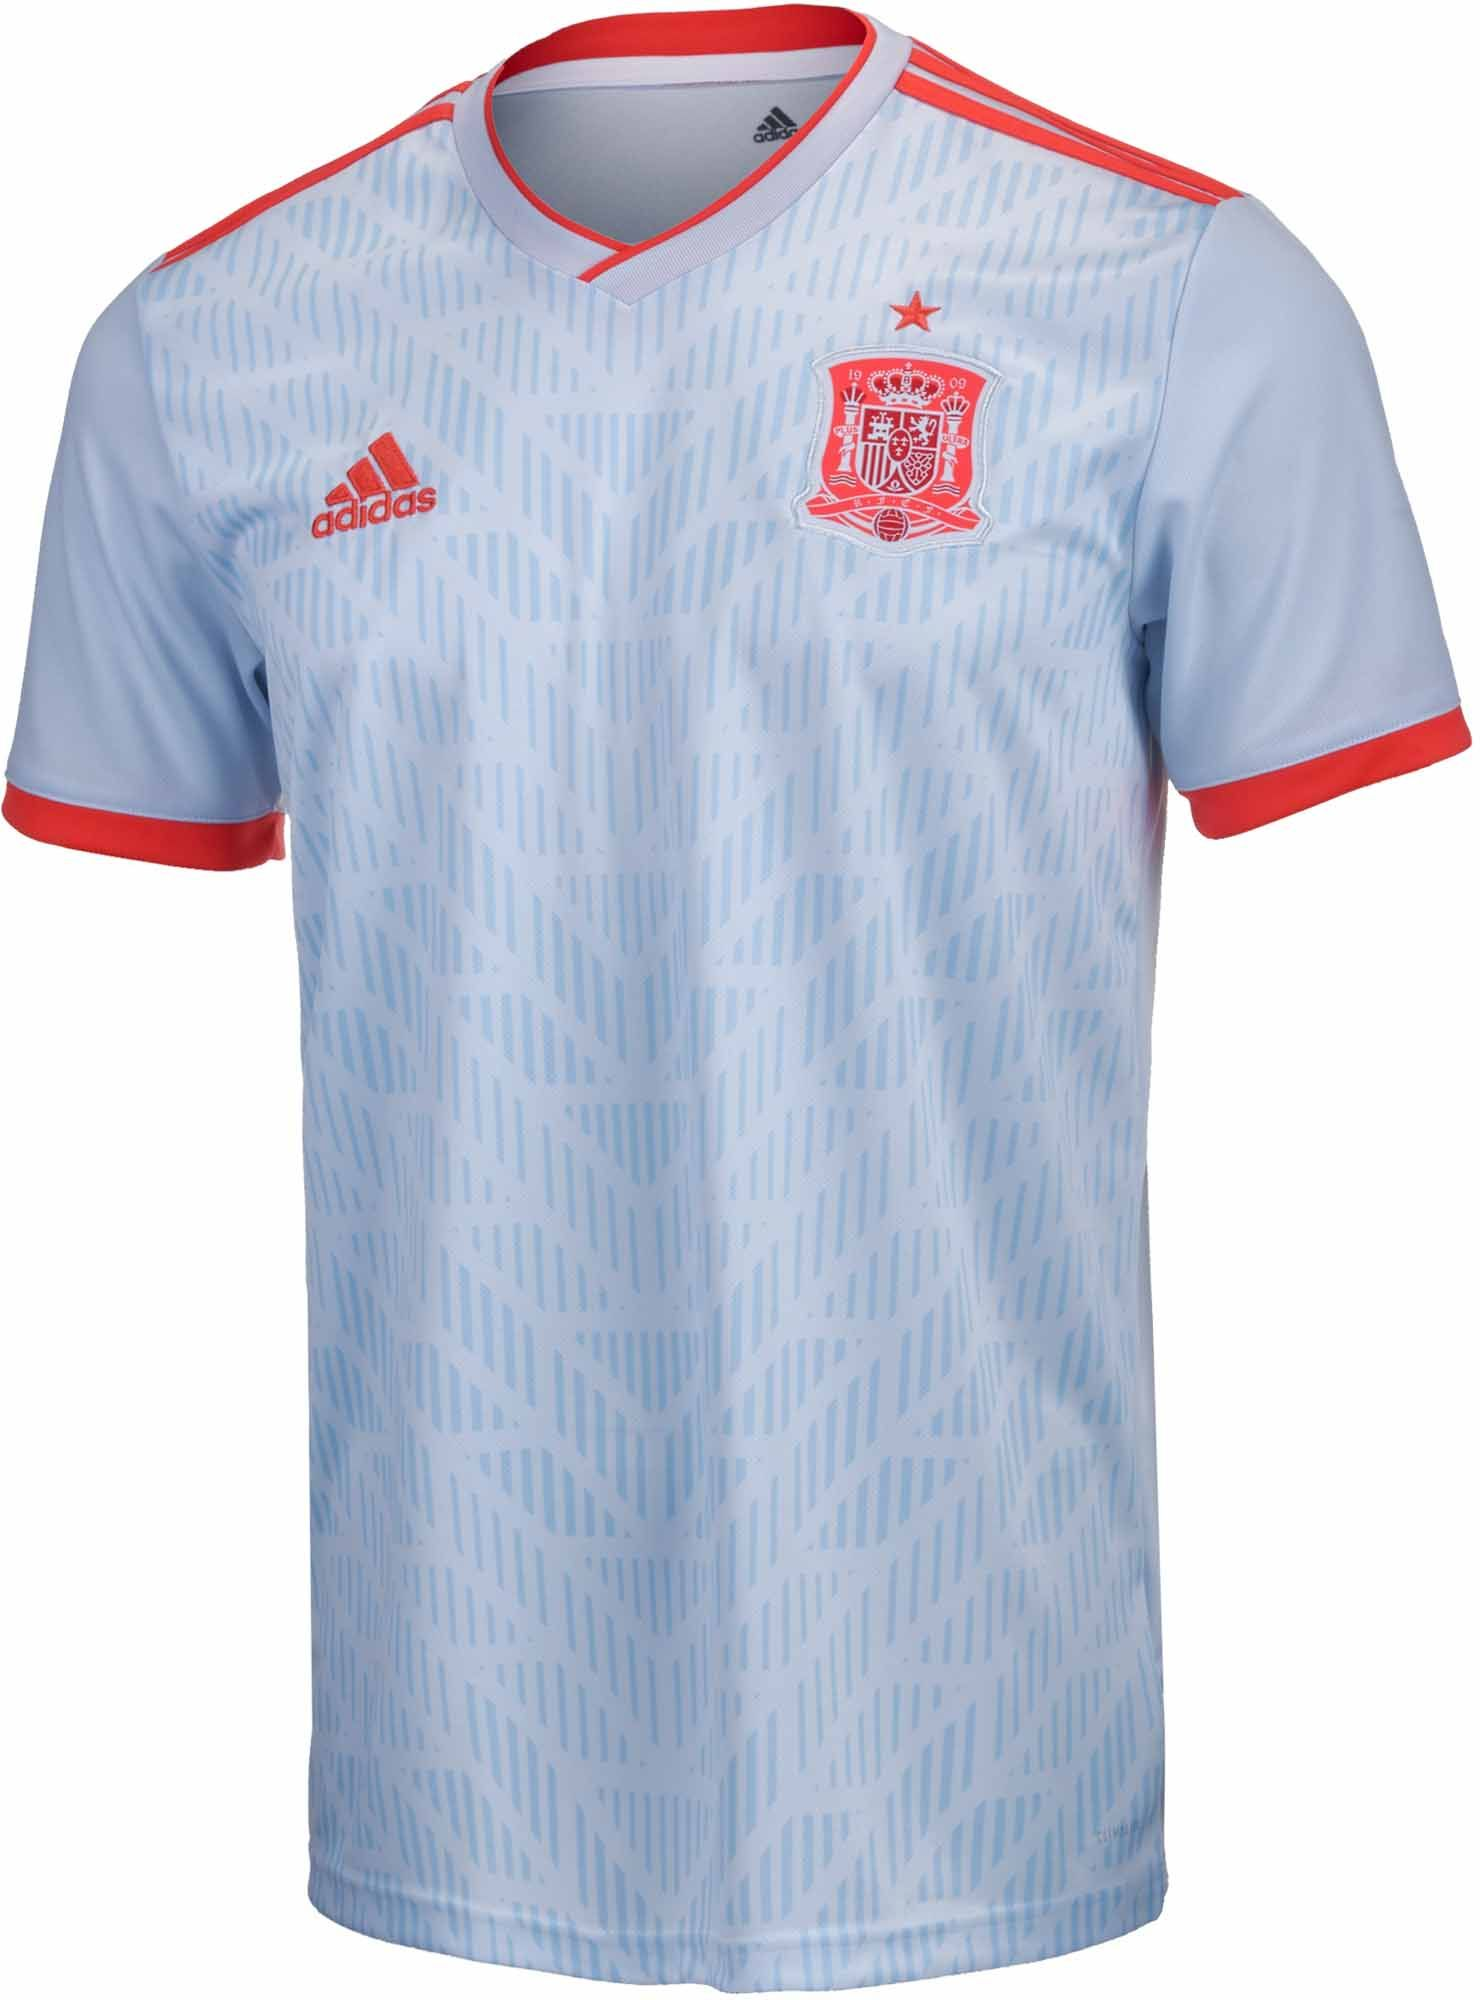 6f8067ac2b Kids 2018 adidas Spain Away Jersey. Hot right now at SoccerPro.